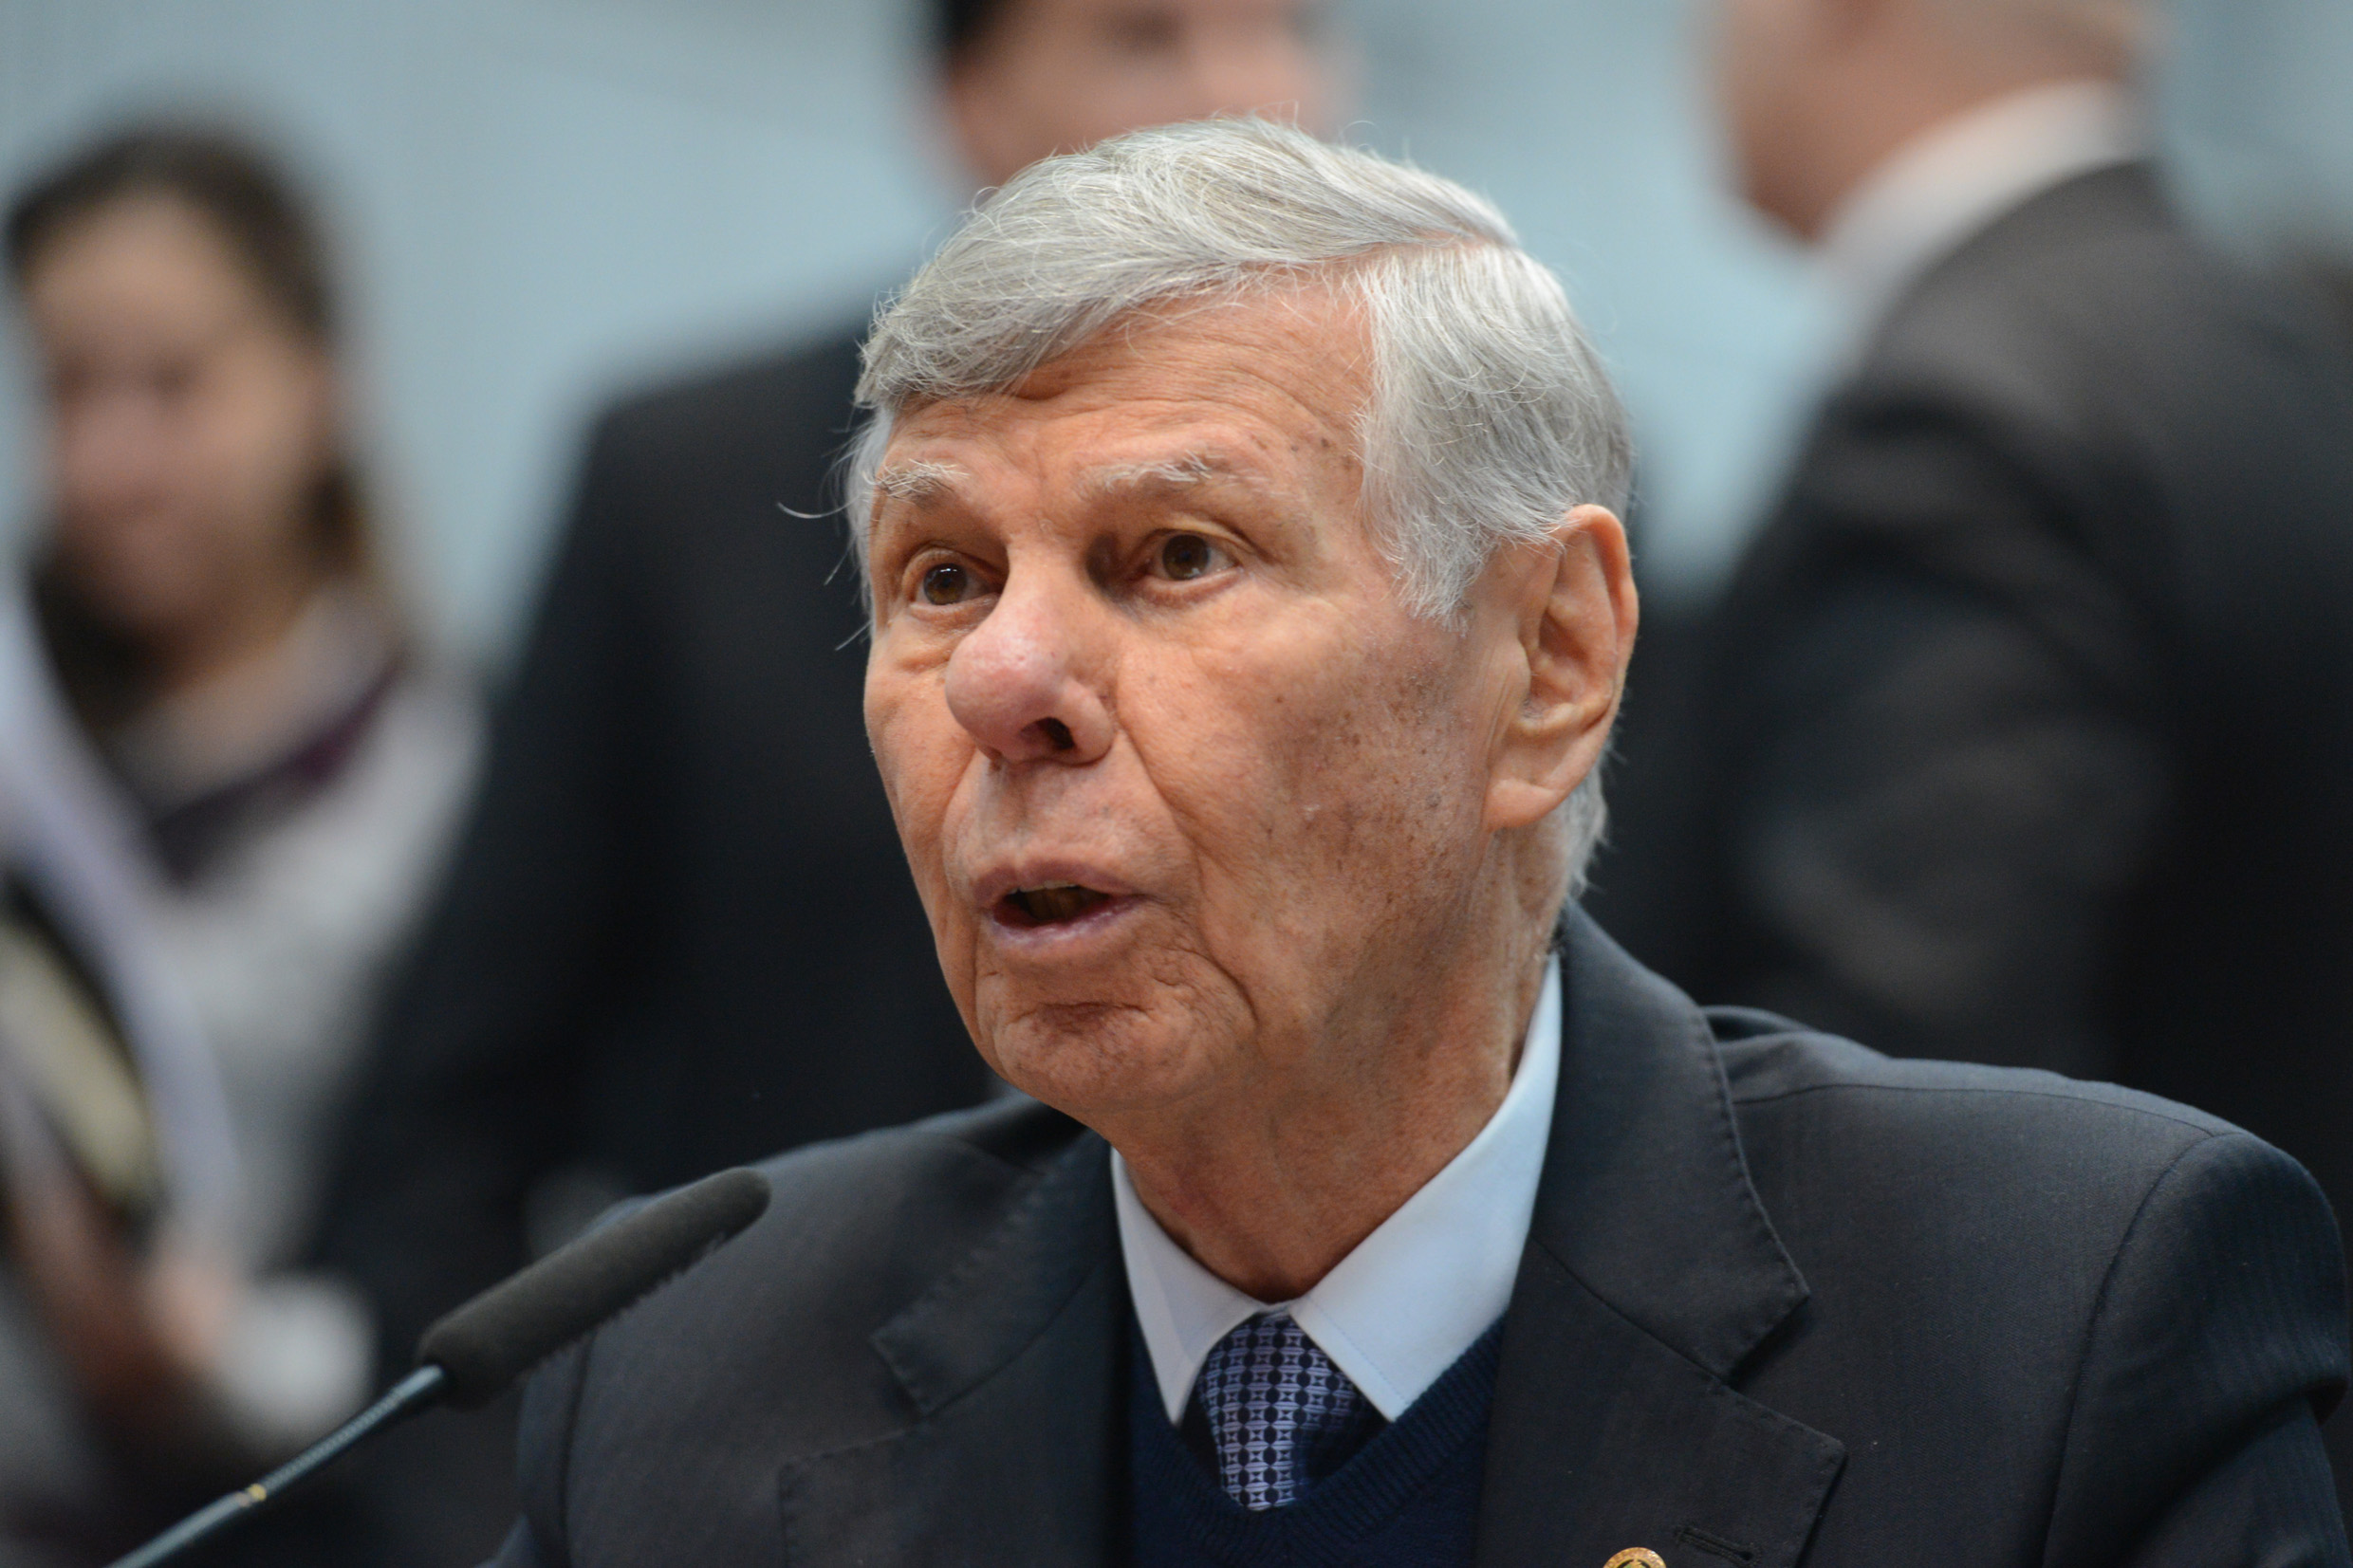 Welson Gasparini  <a style='float:right' href='https://www3.al.sp.gov.br/repositorio/noticia/N-06-2016/fg192198.jpg' target=_blank><img src='/_img/material-file-download-white.png' width='14px' alt='Clique para baixar a imagem'></a>